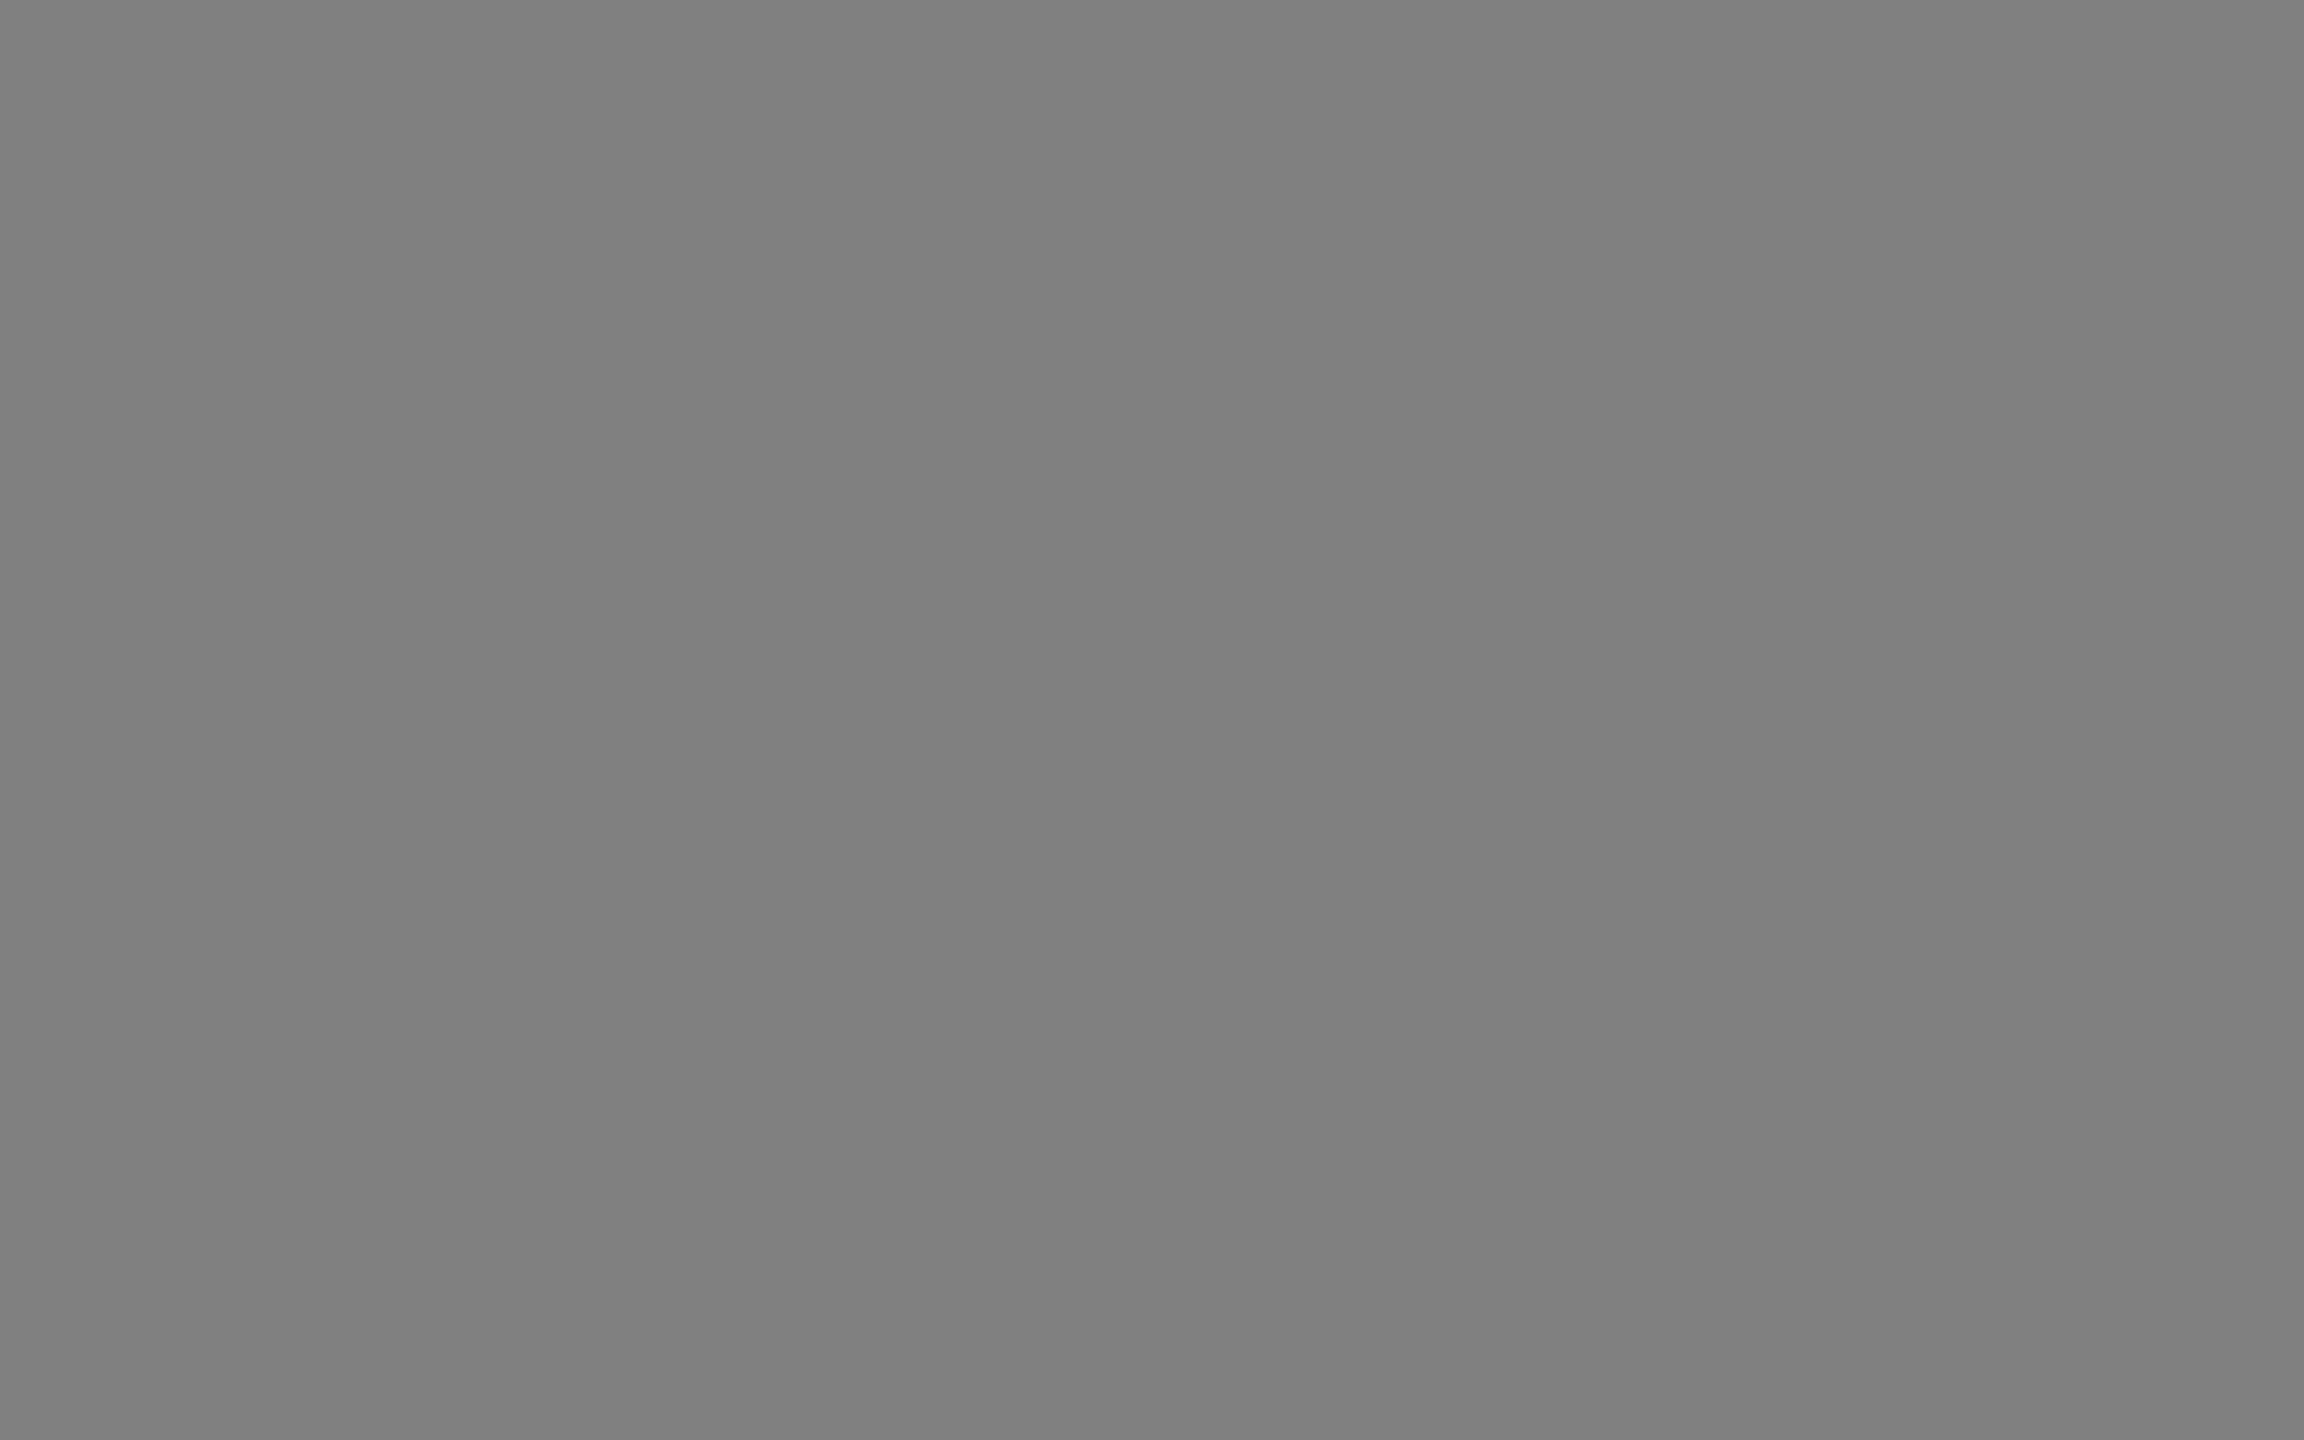 2304x1440 Gray Solid Color Background